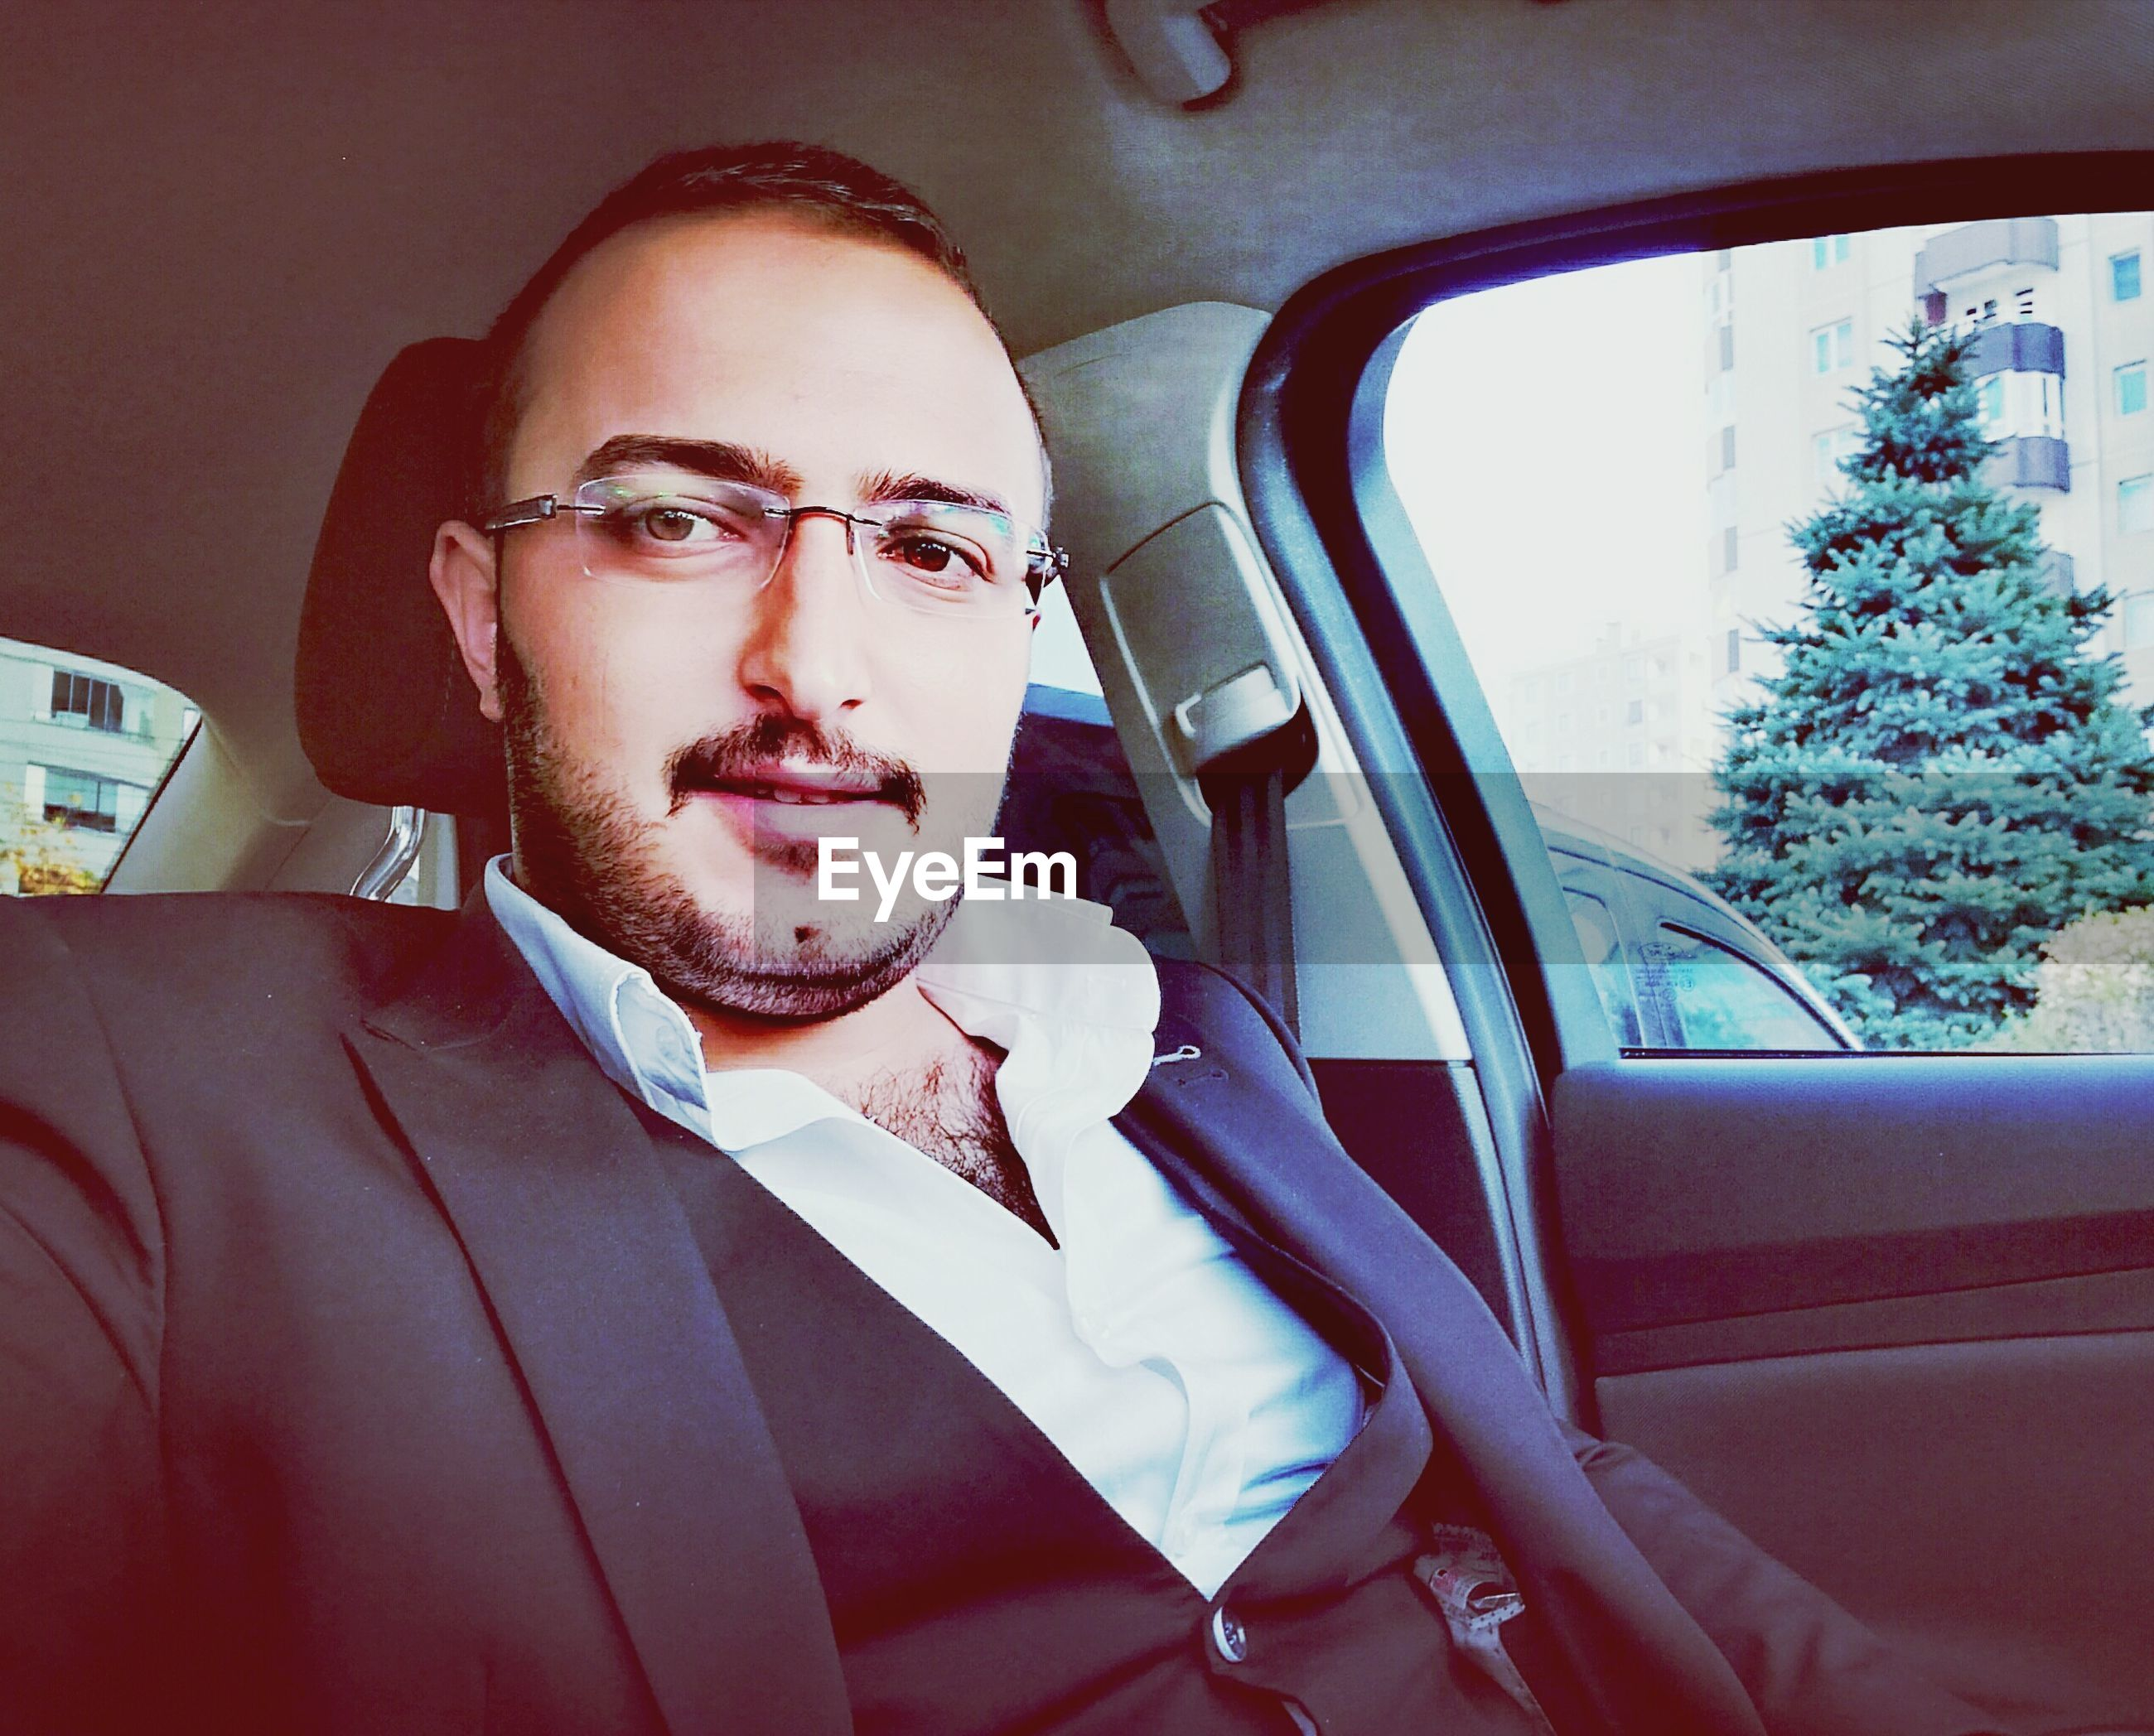 car, only men, one man only, one person, business, car interior, adults only, businessman, young adult, one young man only, vehicle interior, headshot, transportation, eyeglasses, driving, adult, people, men, well-dressed, portrait, close-up, day